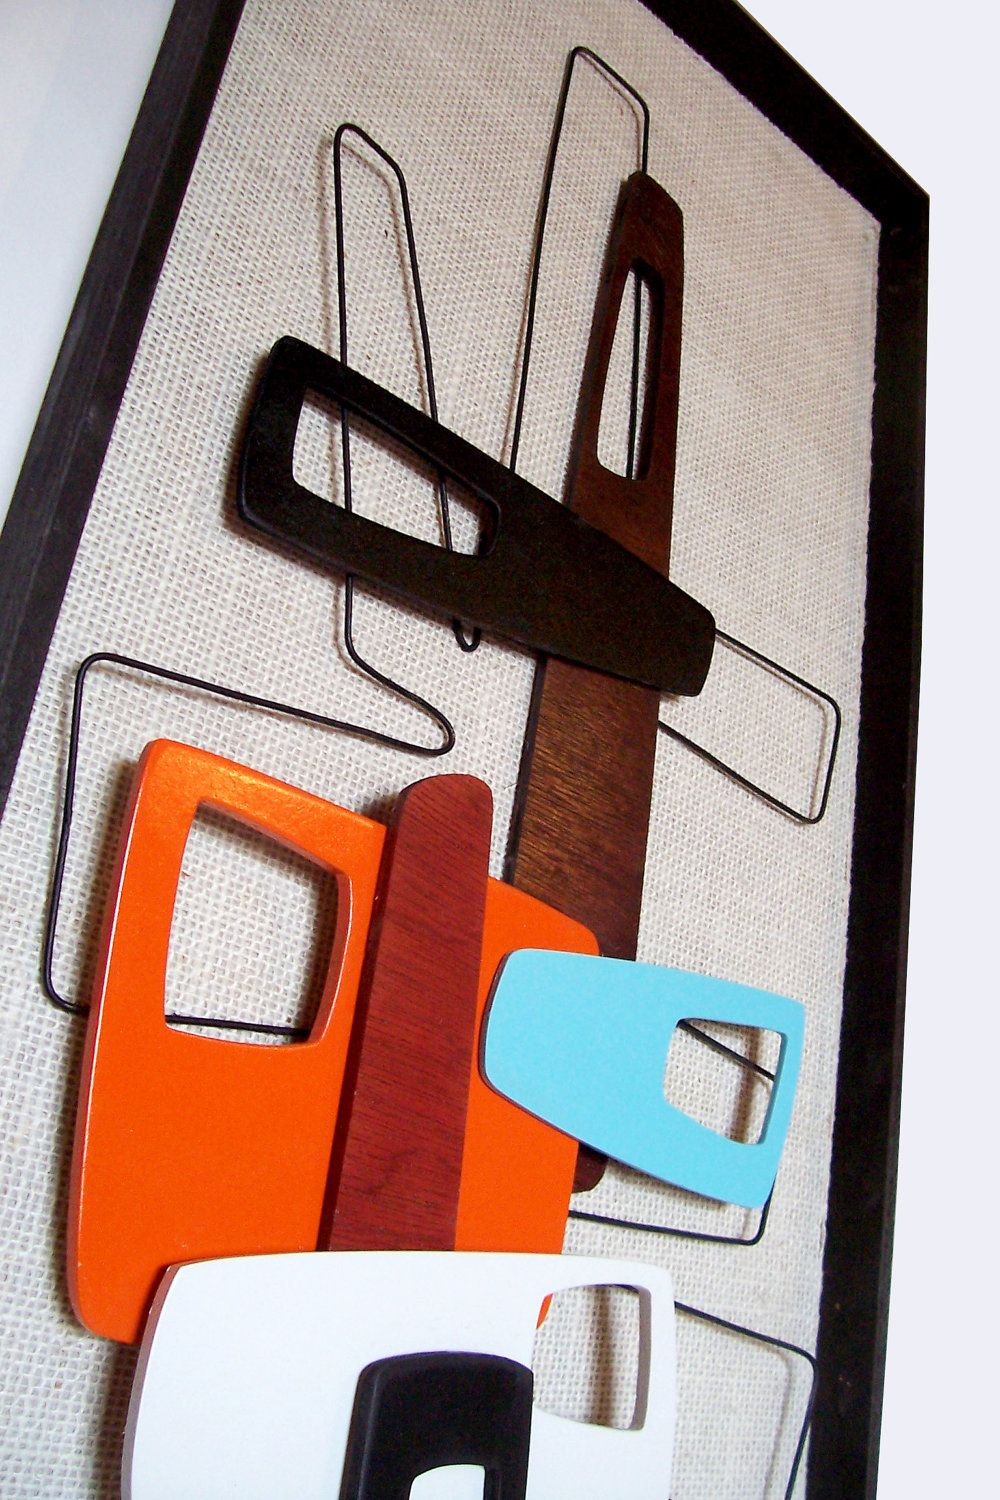 Mid century modern abstract wall art sculpture painting retro eames